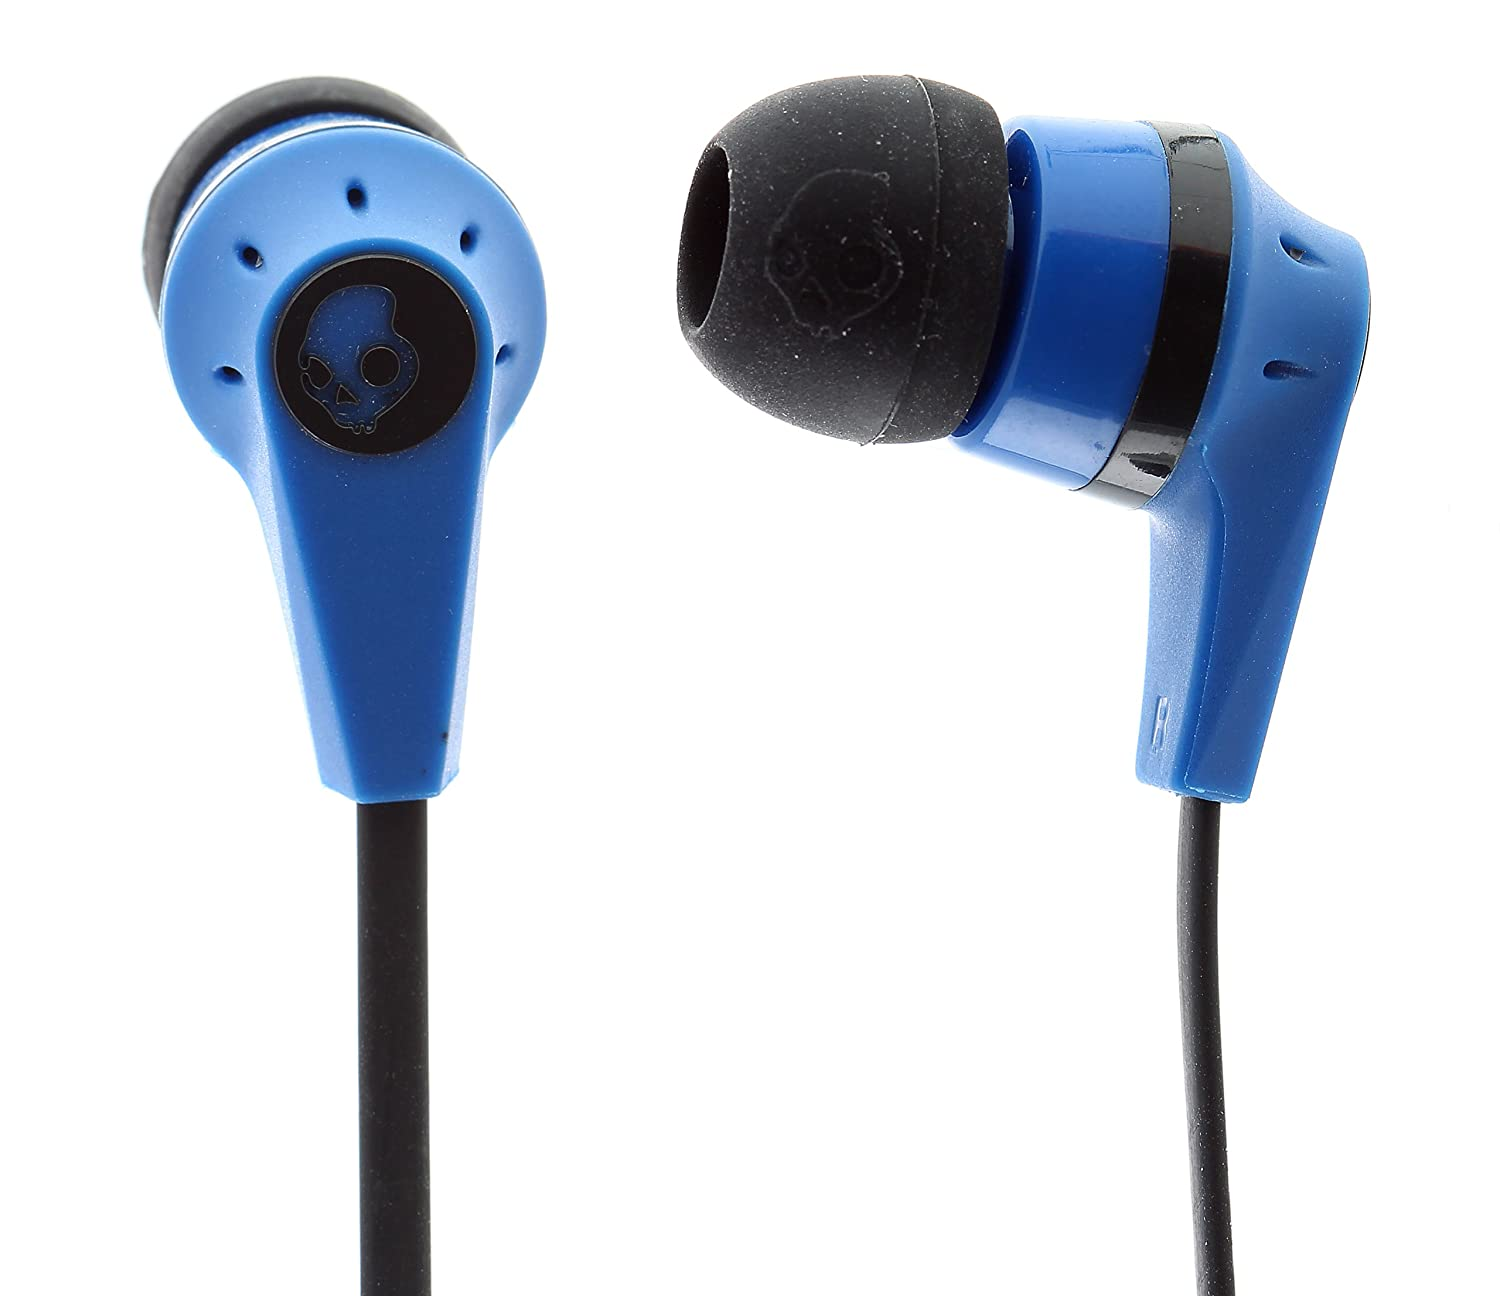 If like me you sometimes misplace your wireless headphones, a new pair of noise cancelling cans from Skullcandy might be the perfect solution. The new Skullcandy Venue headphones are equipped with.